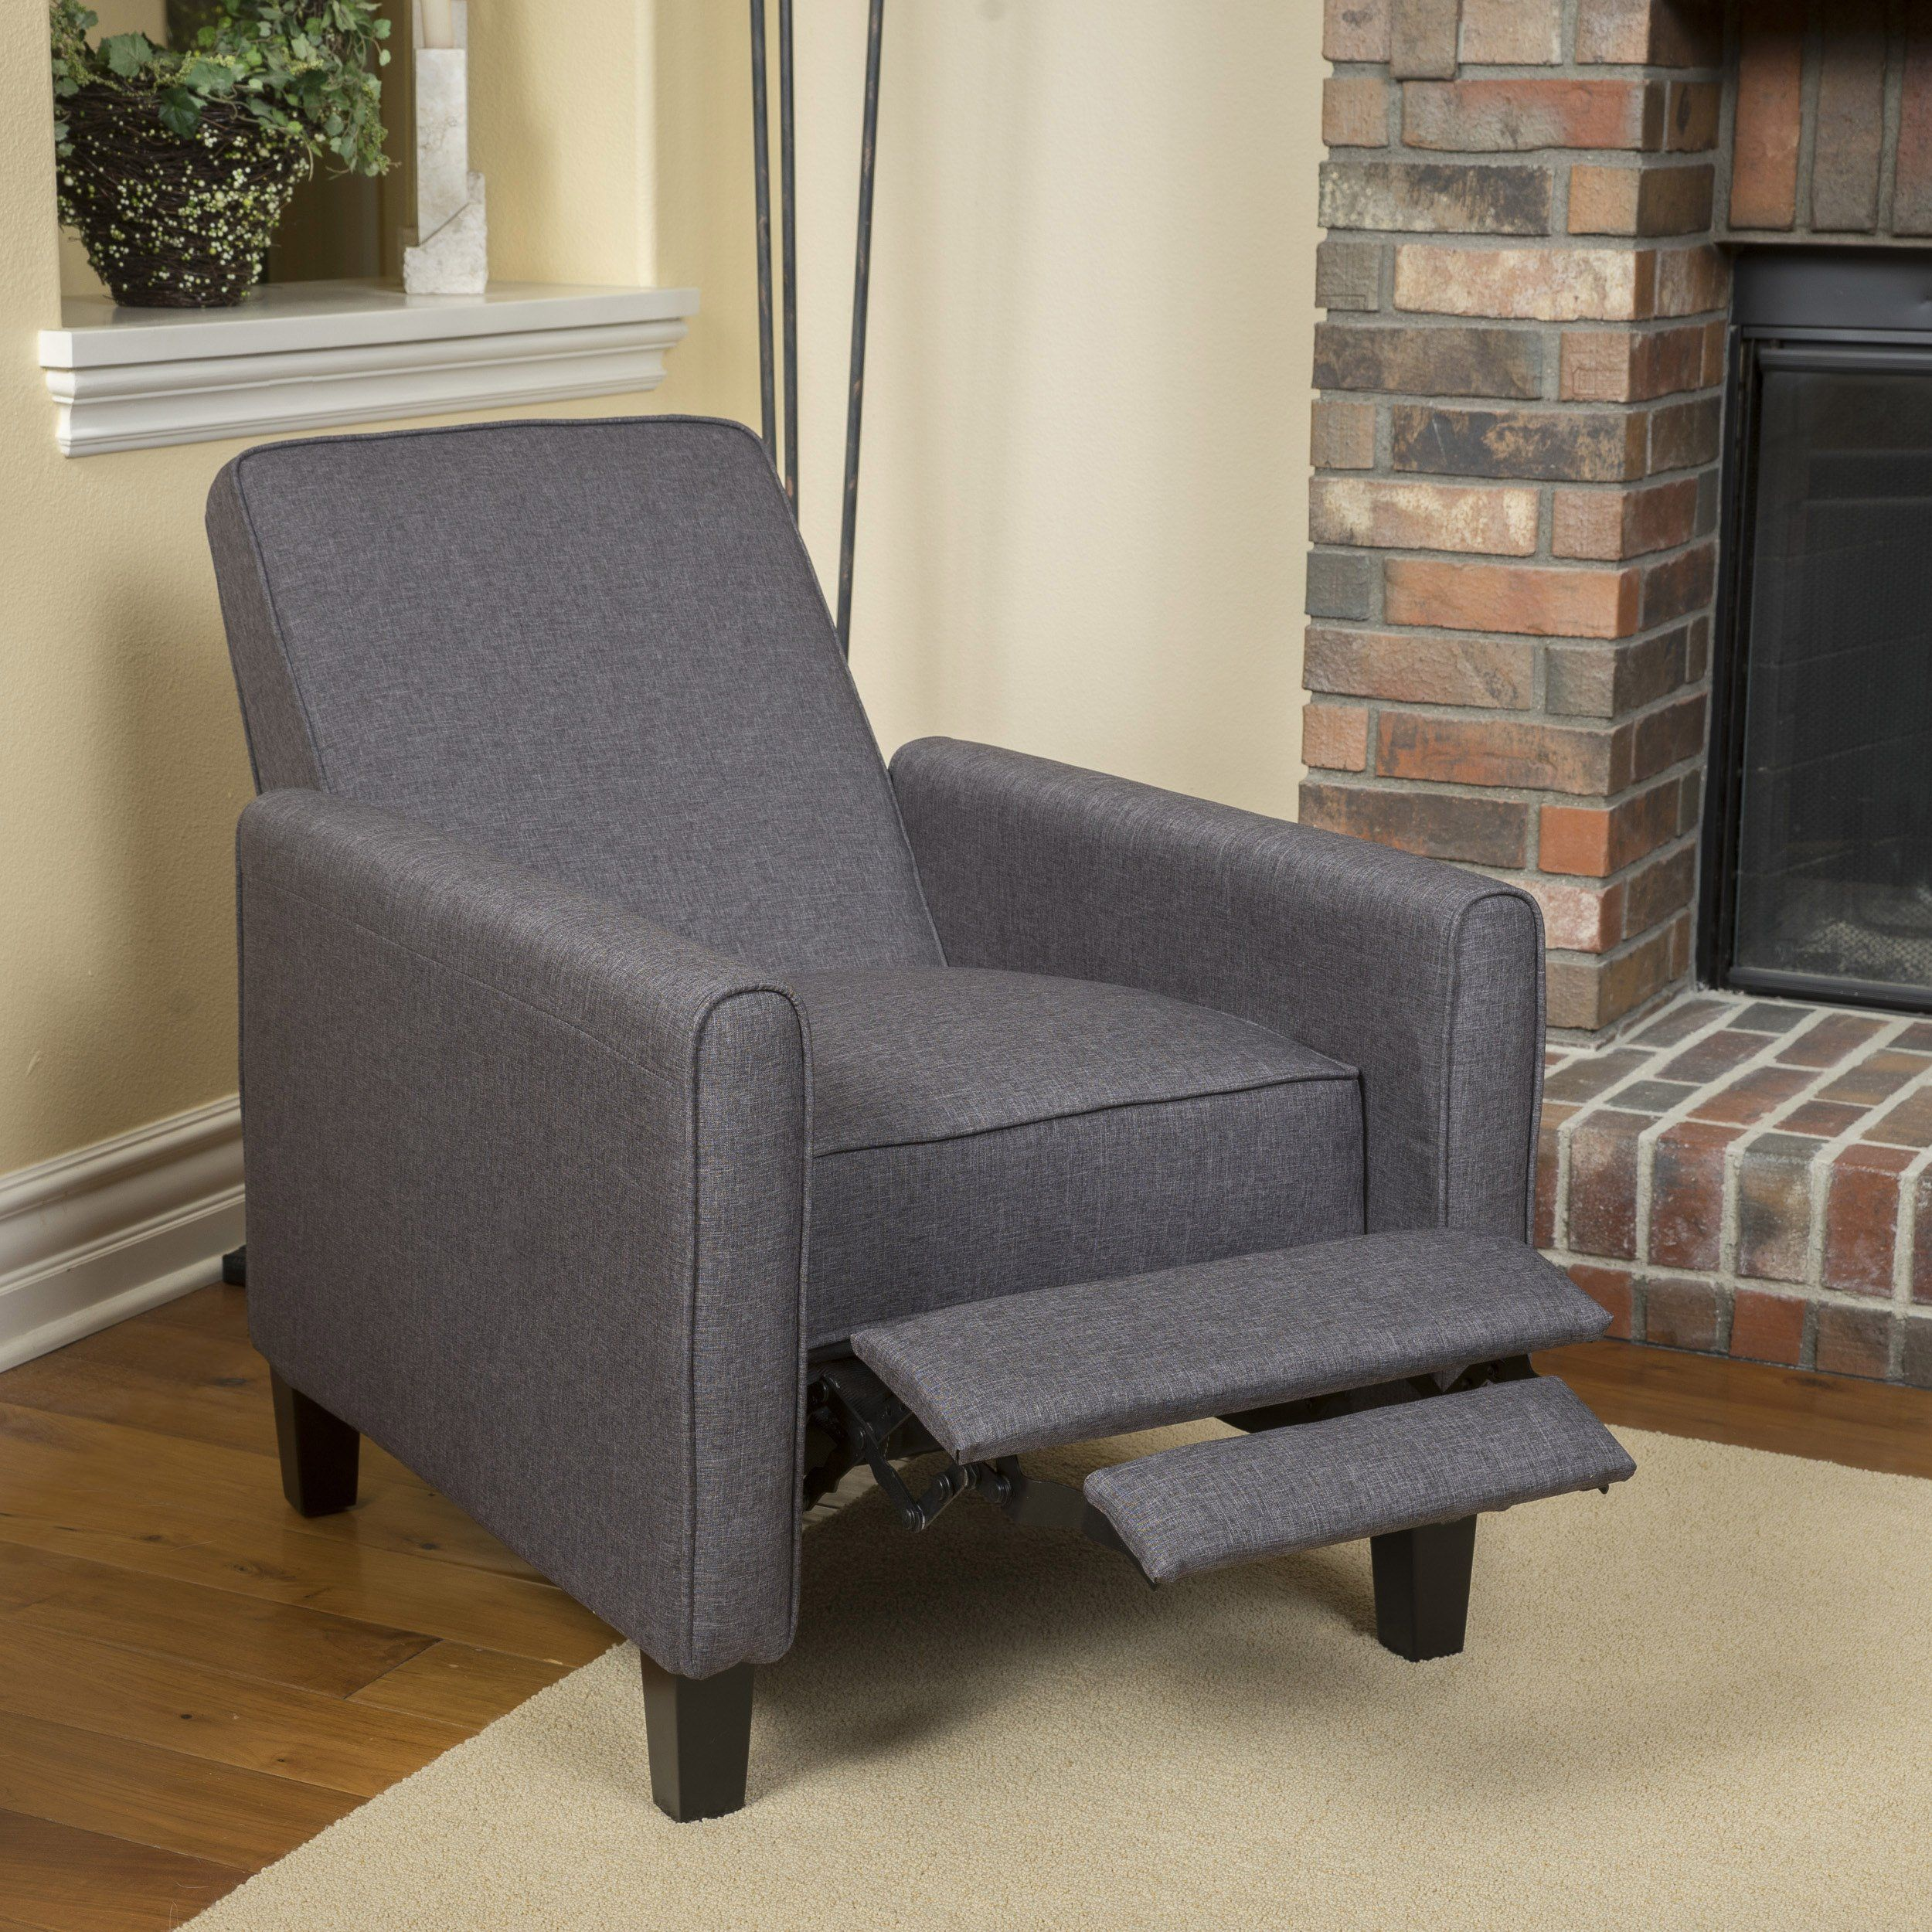 Get comfortable chairs for small spaces to relax | Club chairs